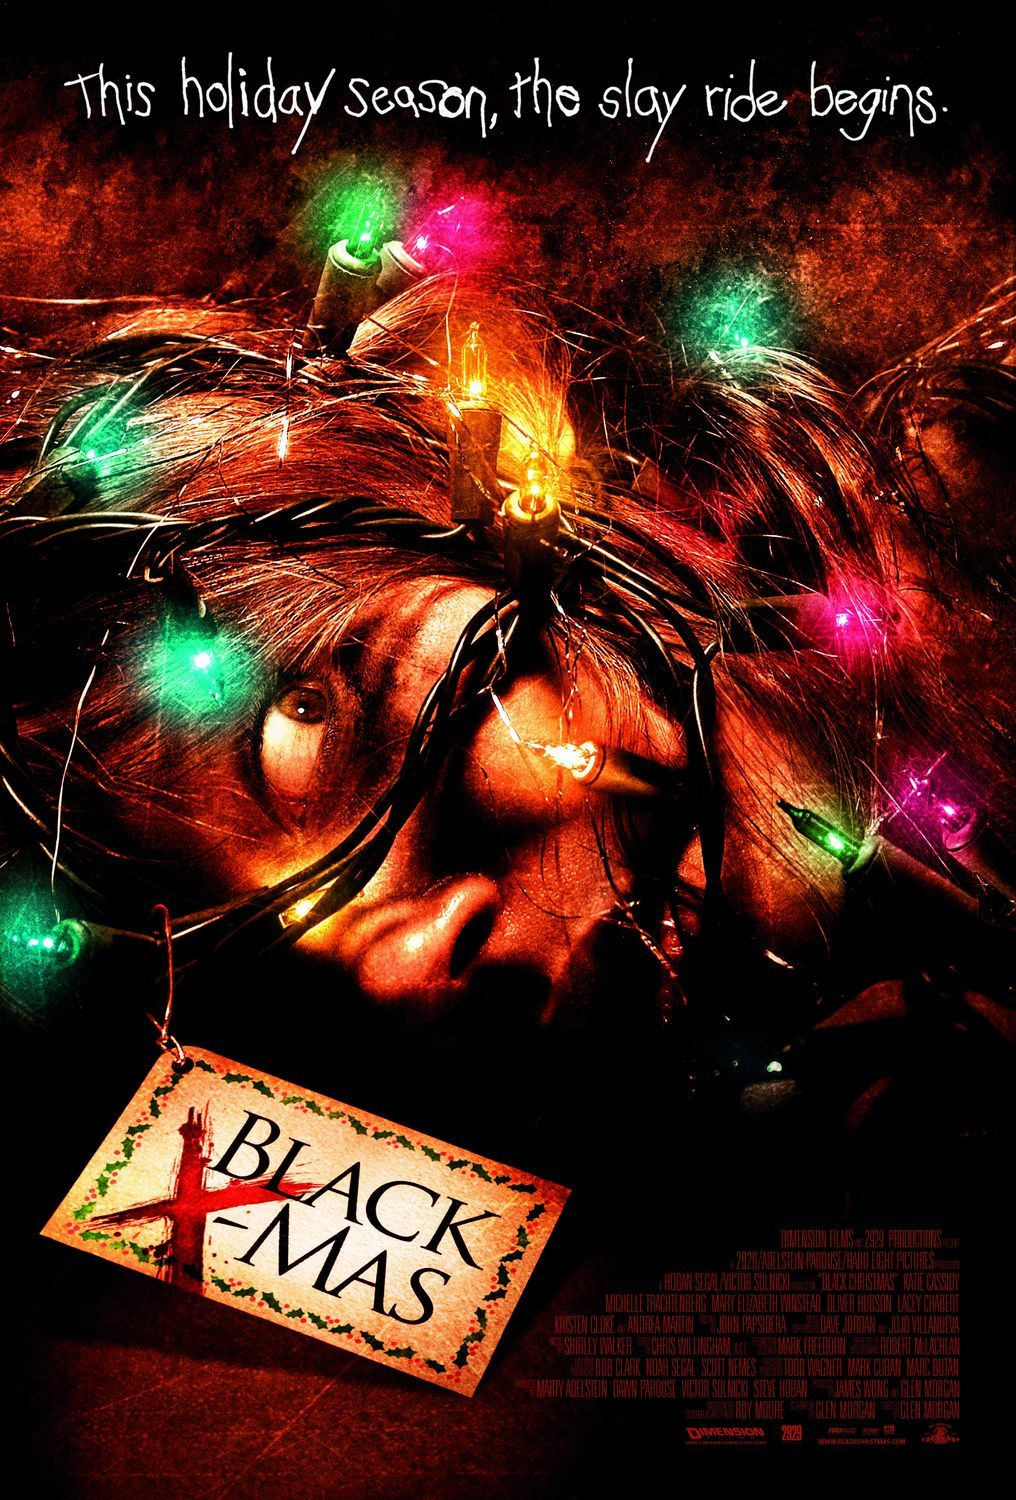 16. Black X-Mas (2006) - Glen Morgan's remake of Black Christmas realizes it can't be the original so instead adds a twisted back story and some truly skincrawling plot beats. While it has a few moments of misplaced misogyny from the hands of bad producers, it still manages to be a slick, brutal remake with a mean spirit and some excellent set piece kills.